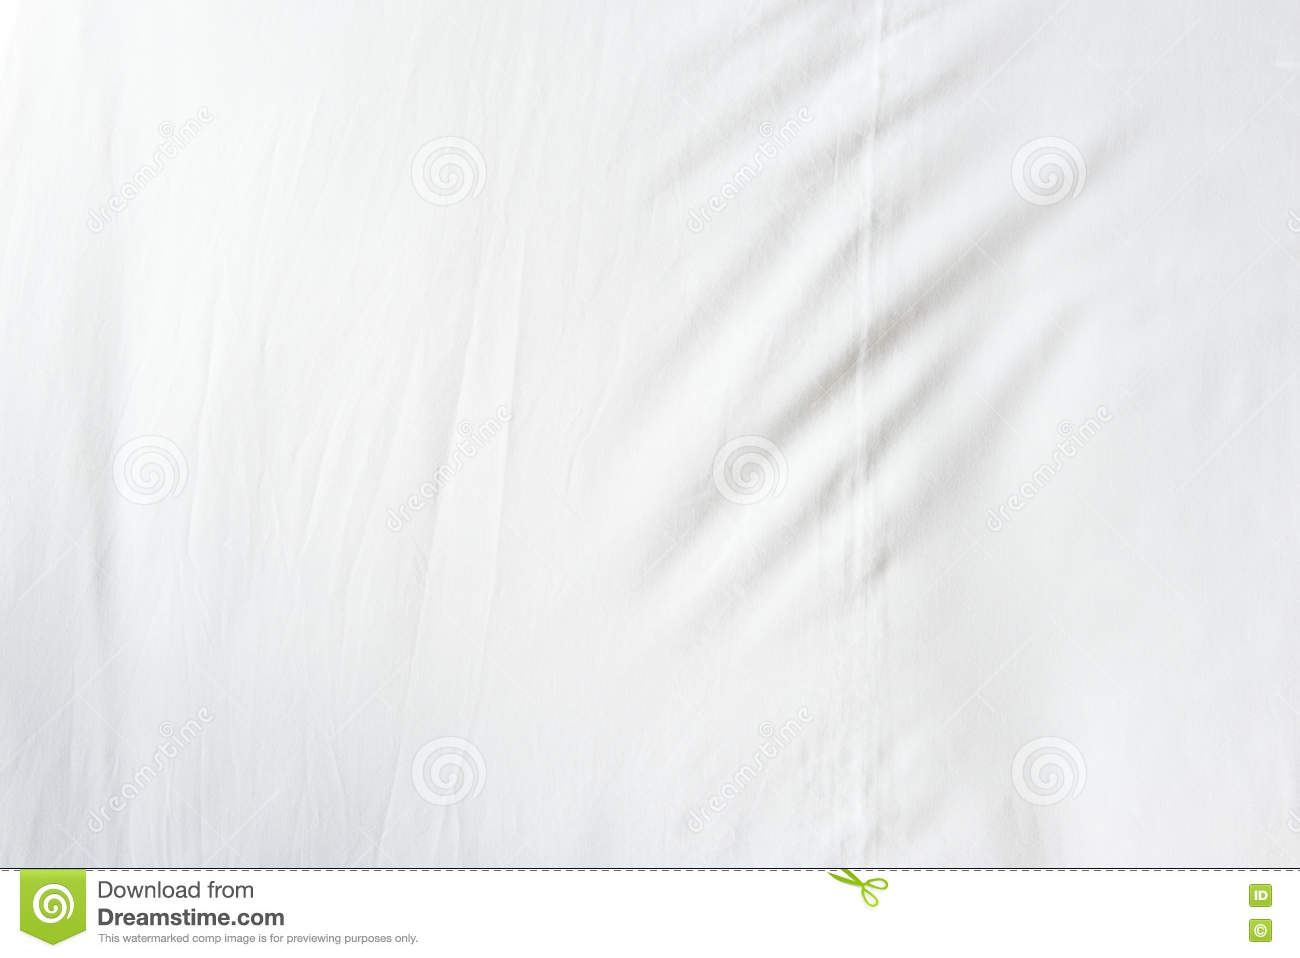 Top View Of Wrinkles On An Unmade Bed Sheet After A Long